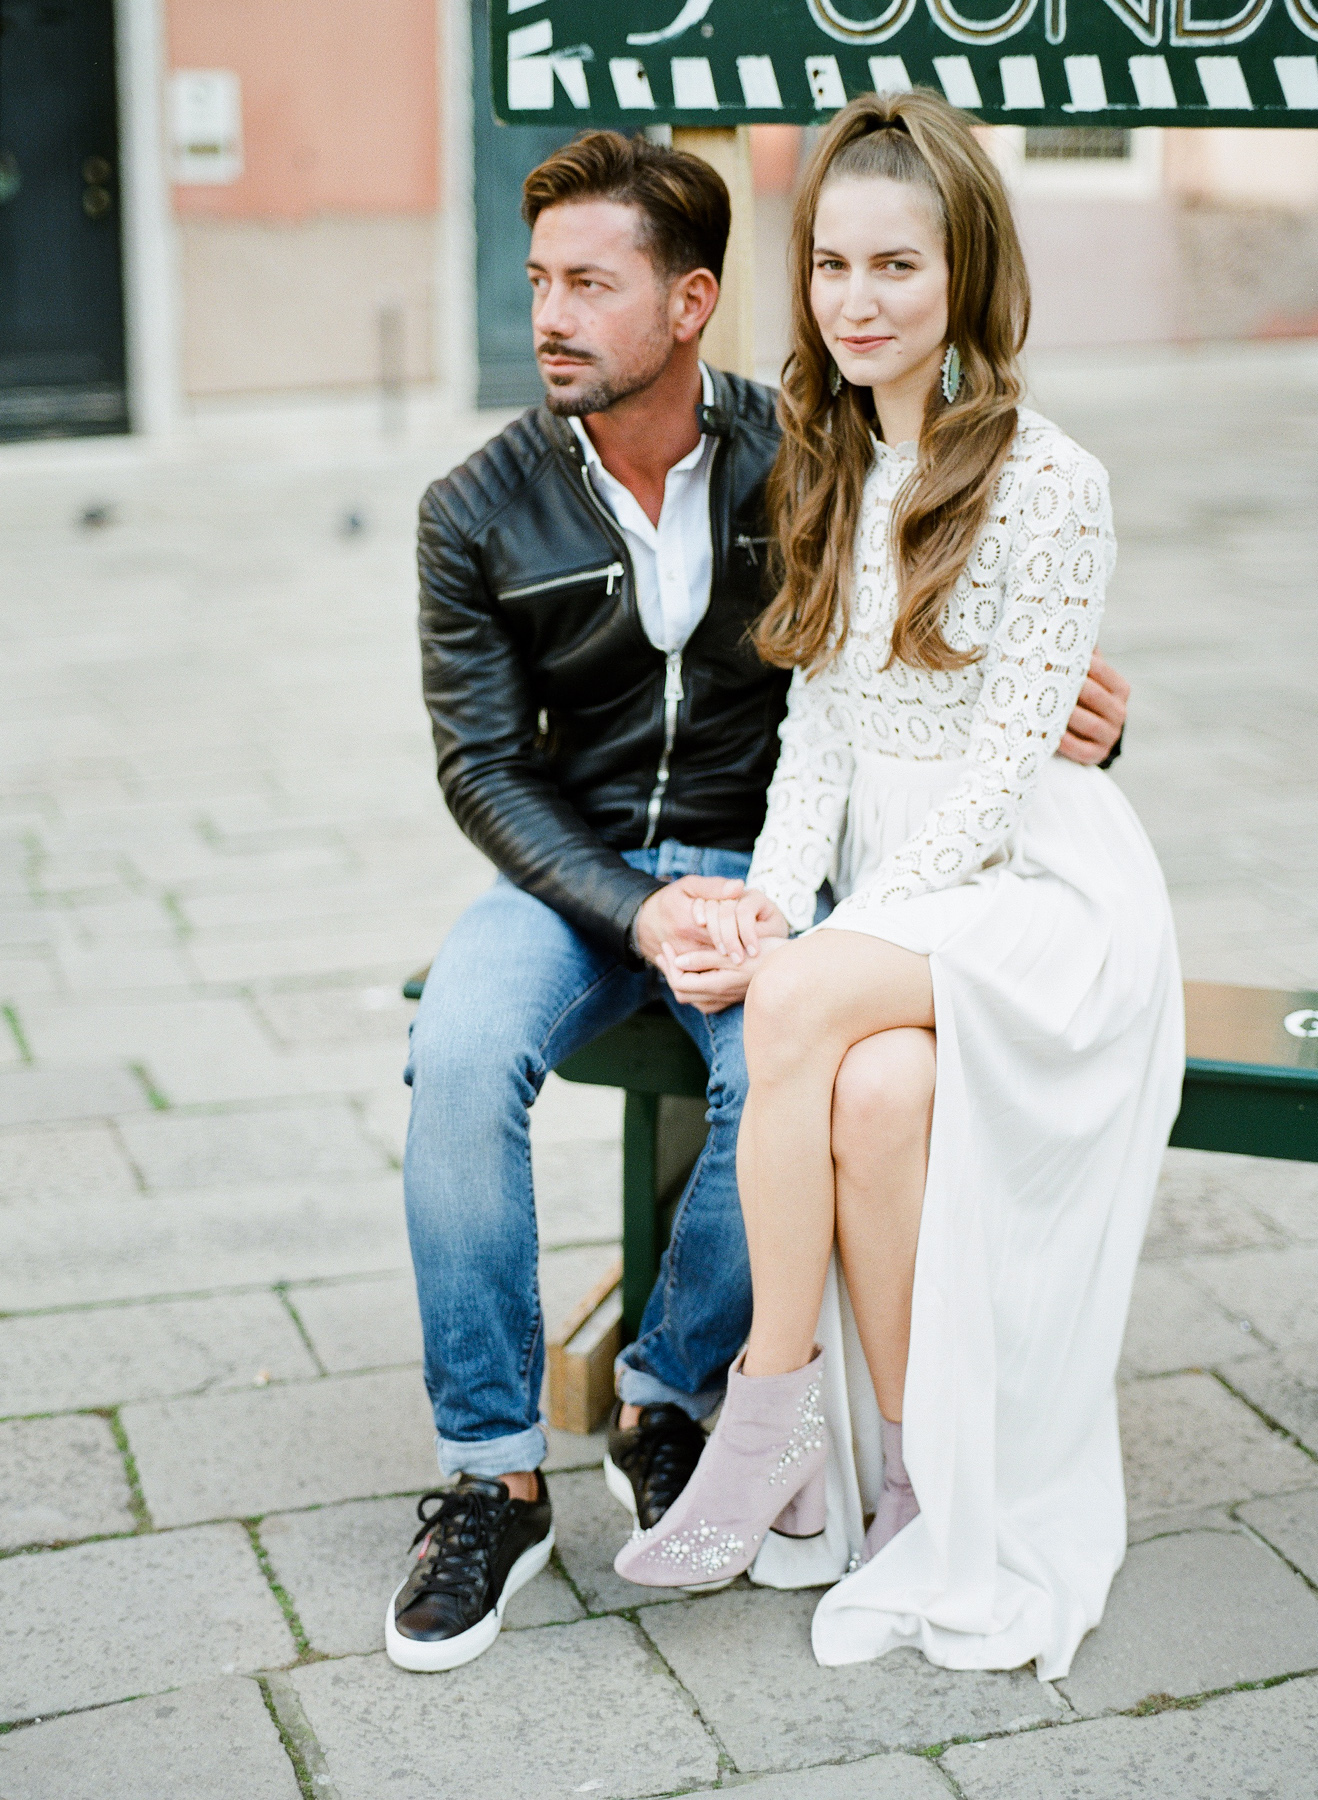 14 Venice Italy Photographer Wedding.jpg